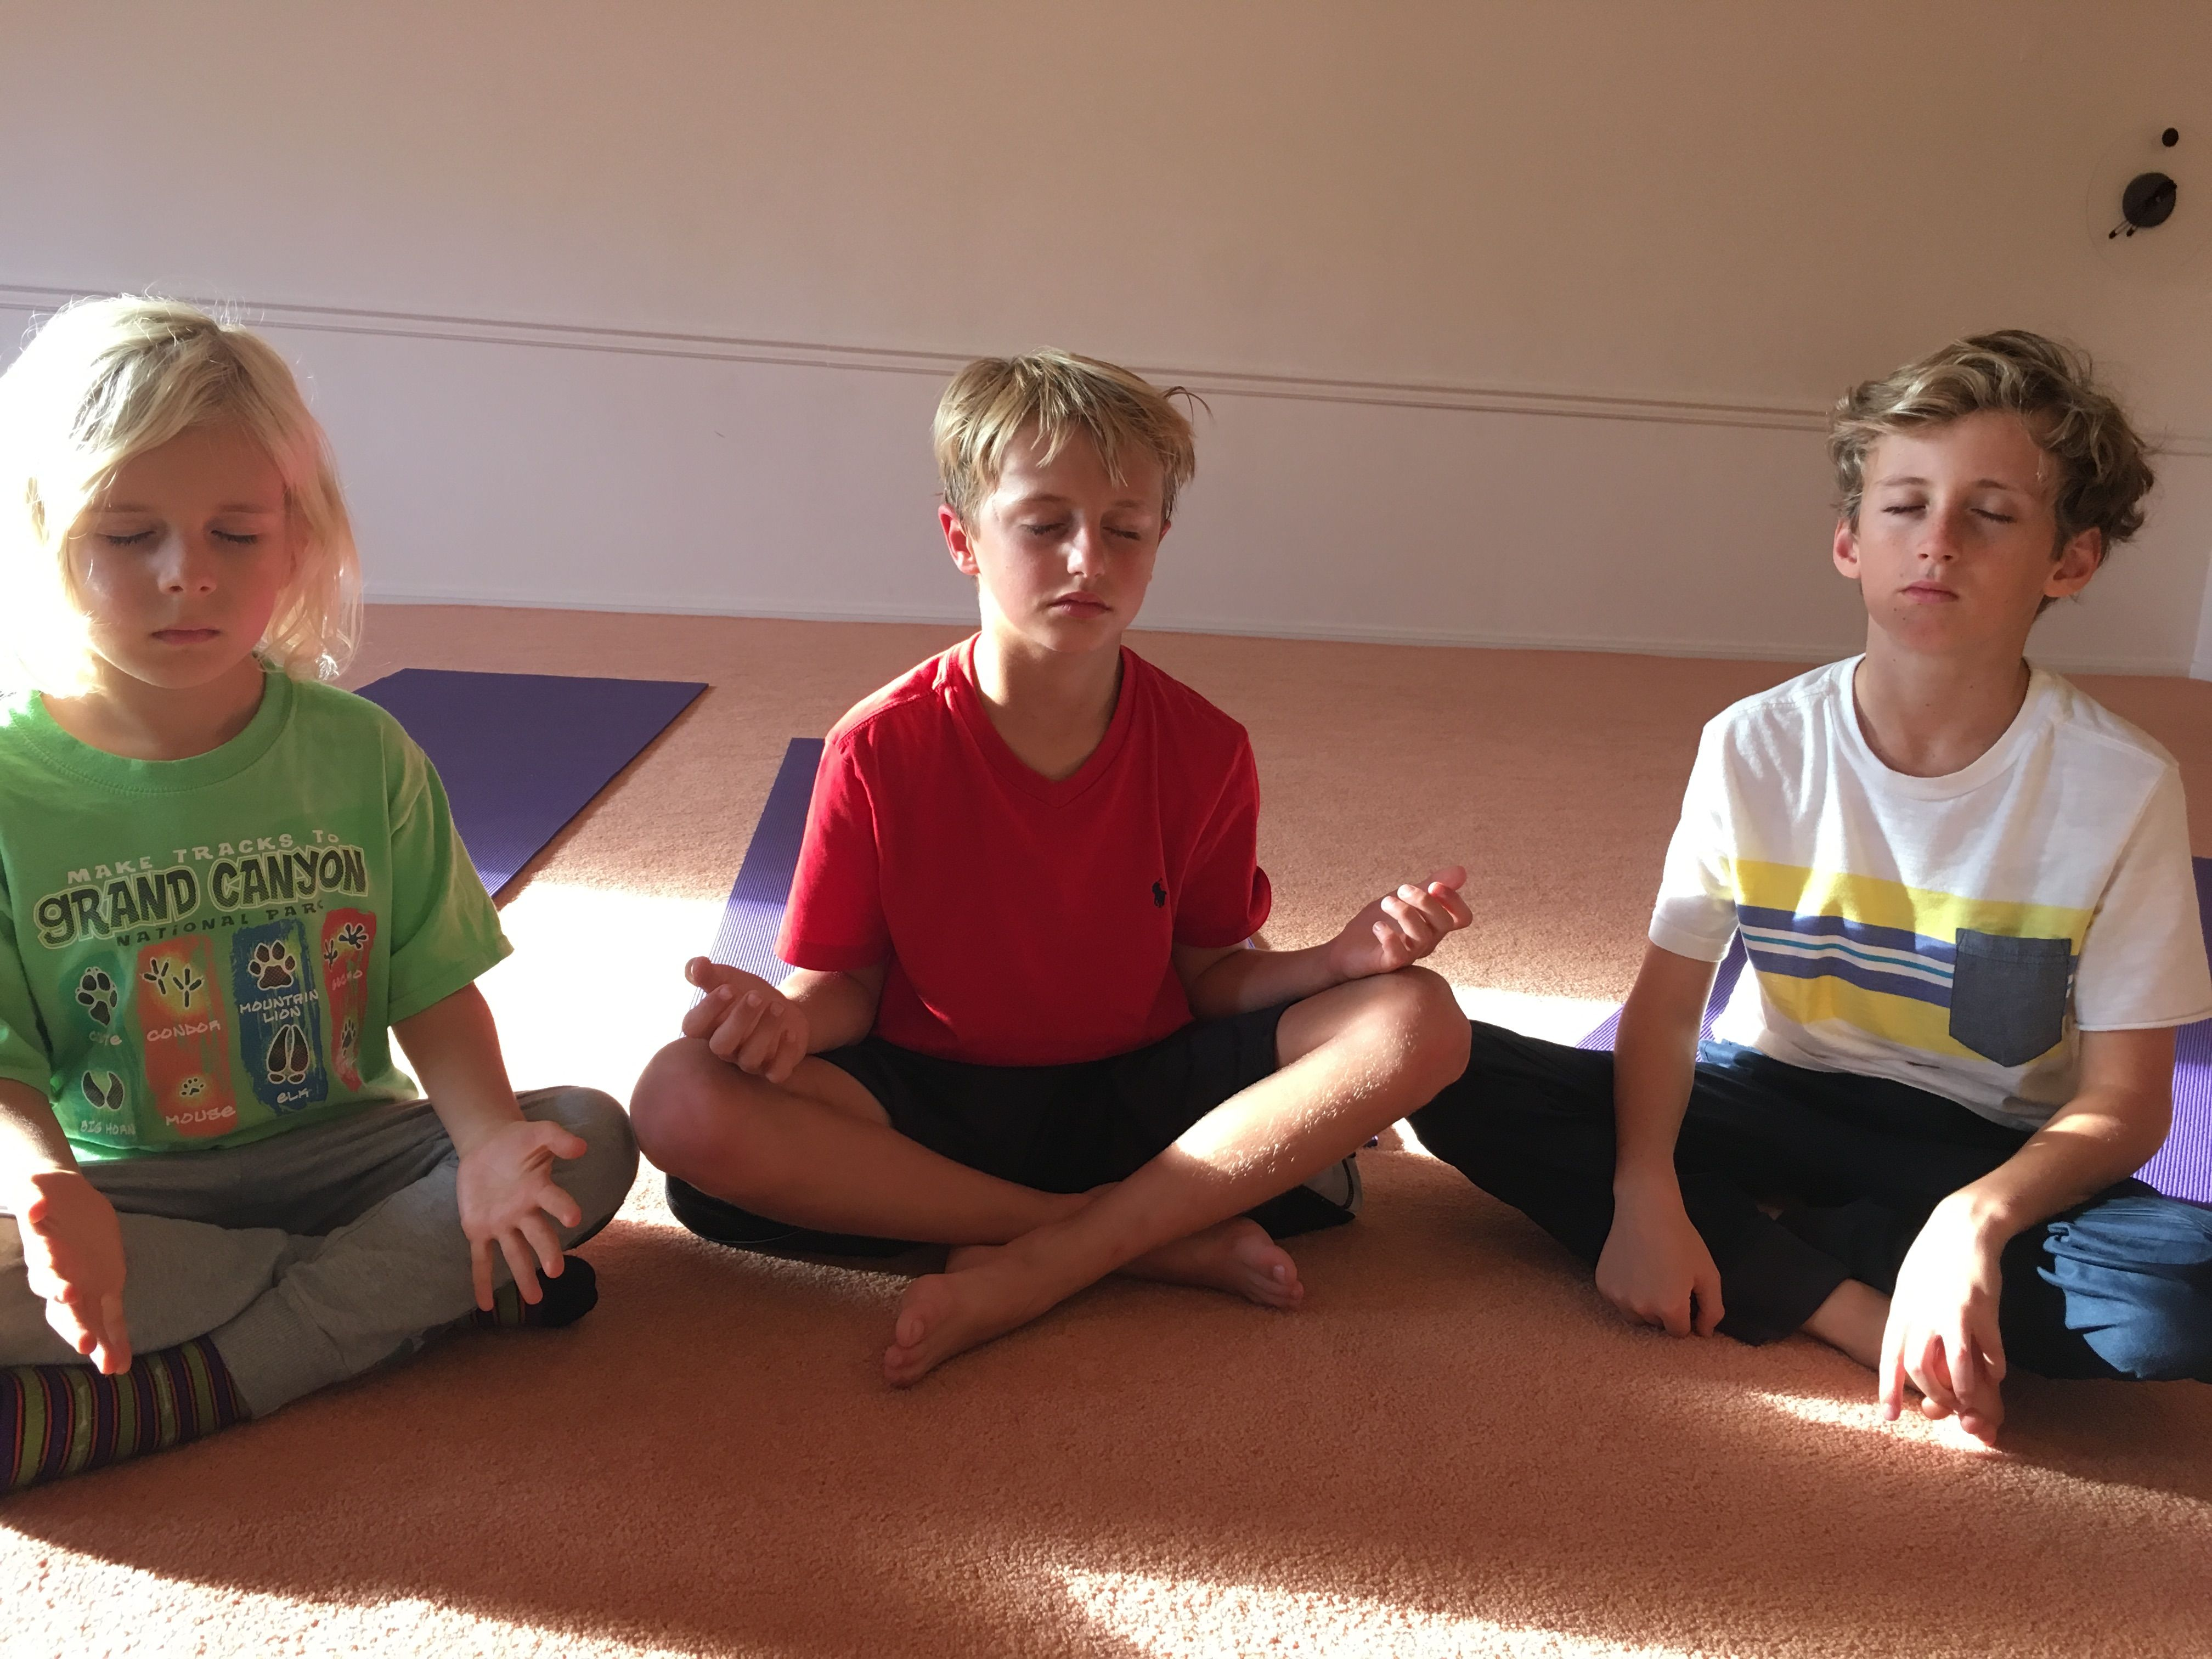 Mindfulness, Meditation and Yoga in schools? – Let's